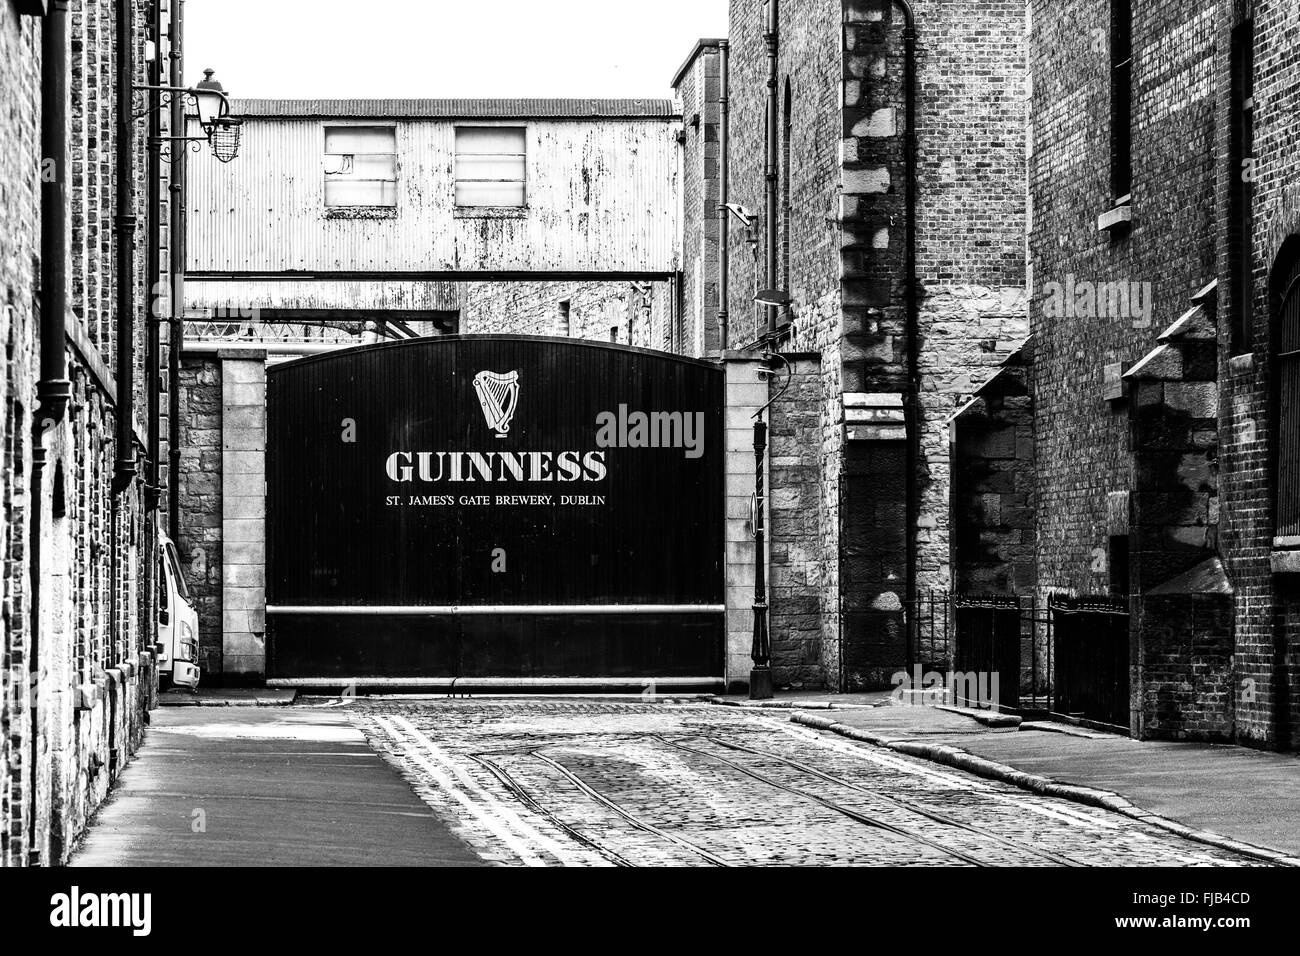 Black and White image of the Guinness gate at Rainsford Street in Dublin - Stock Image